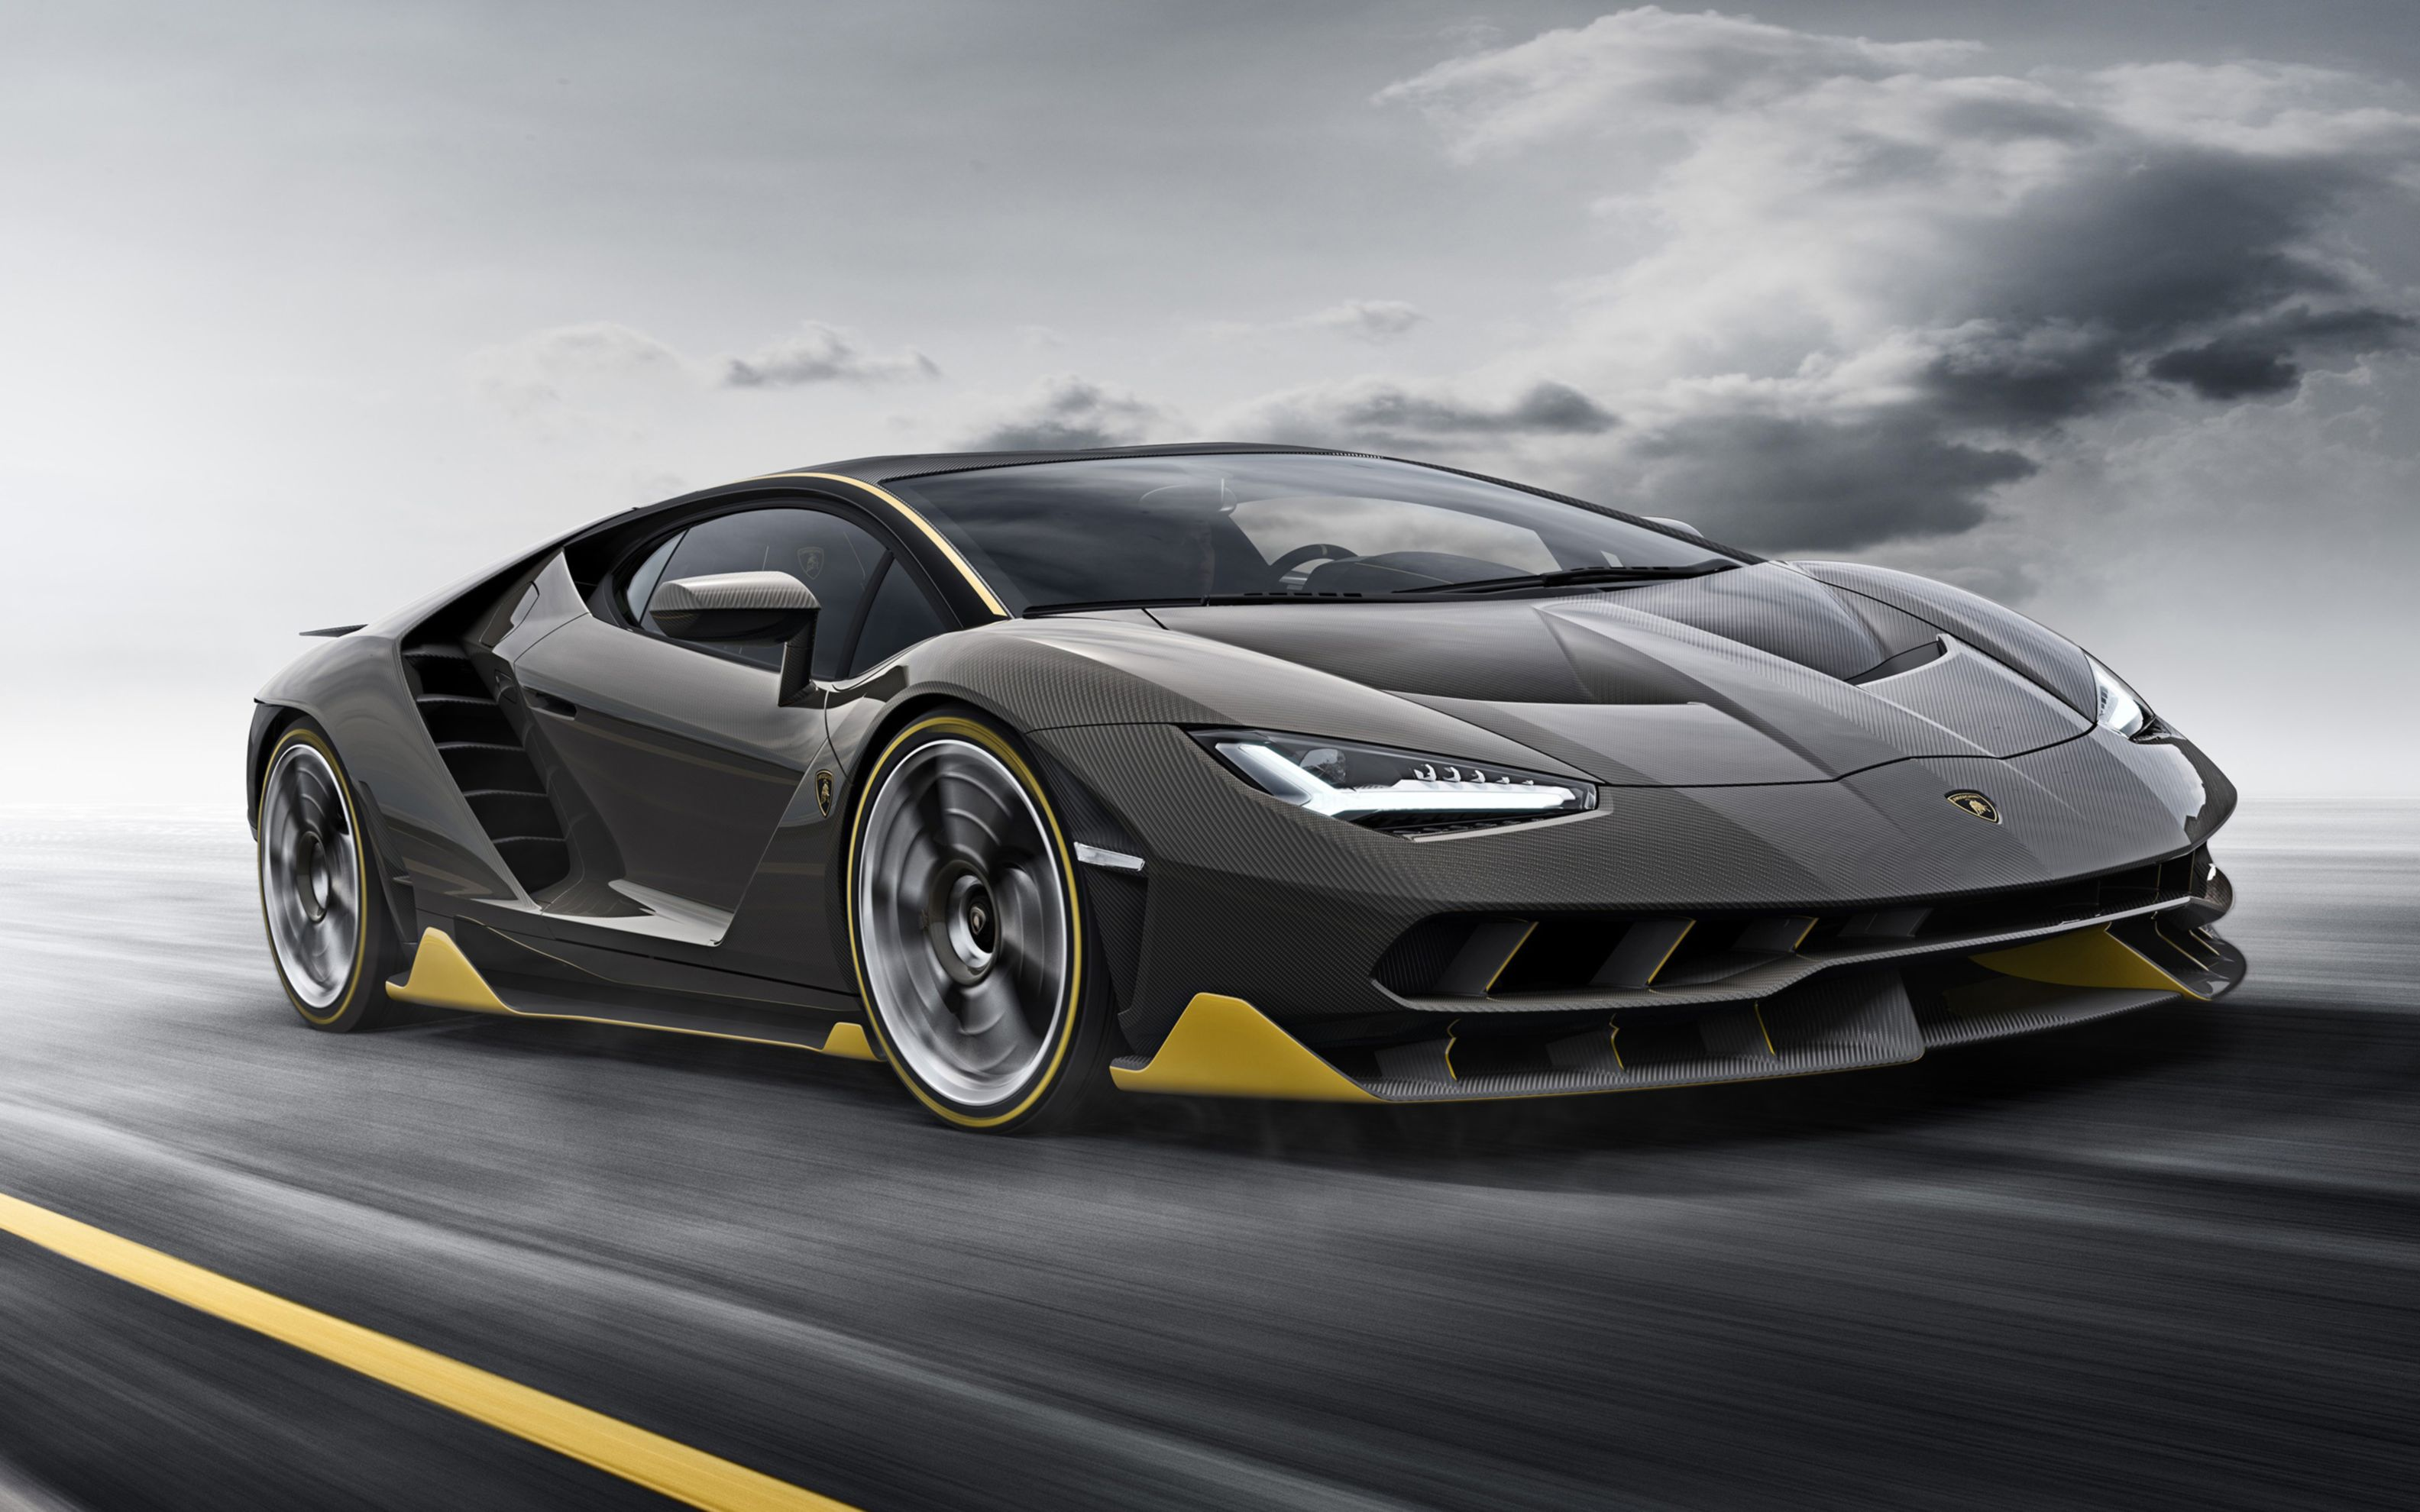 Download free HD 2017 Lamborghini Centenario Wide Wallpaper, image